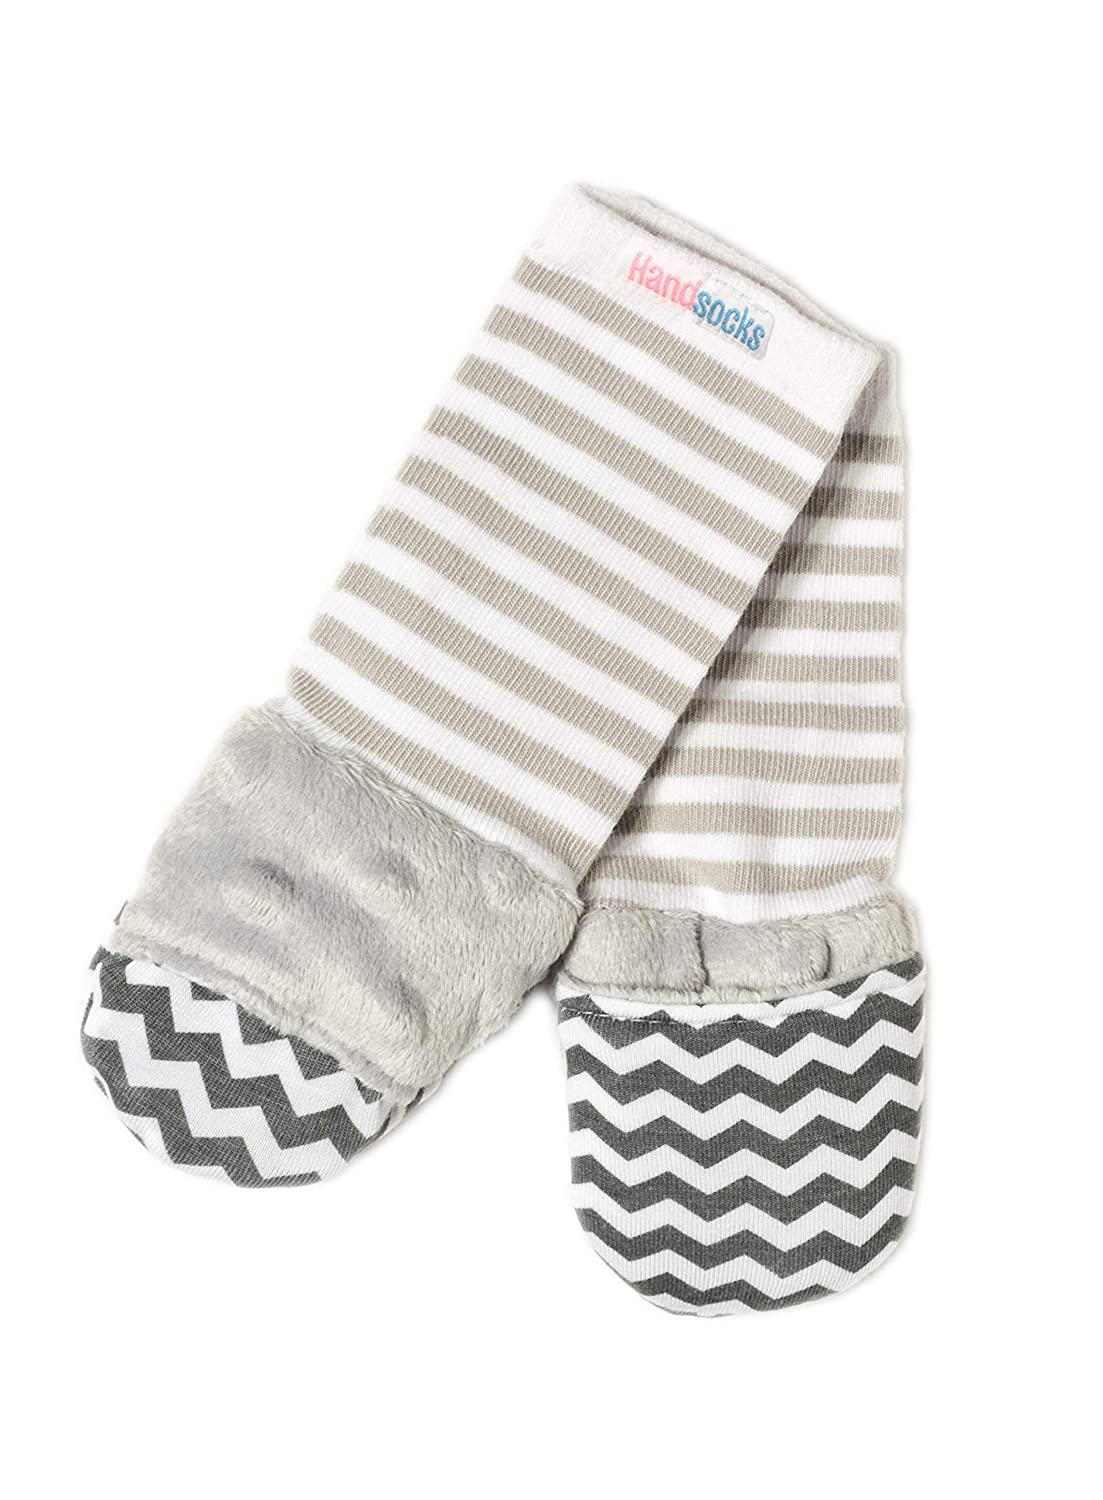 Handsocks Plushy Stay On Strap-Free No-Scratch & Warmth Mittens (Small (0-6 Months), Elodie (Grey Chevron))